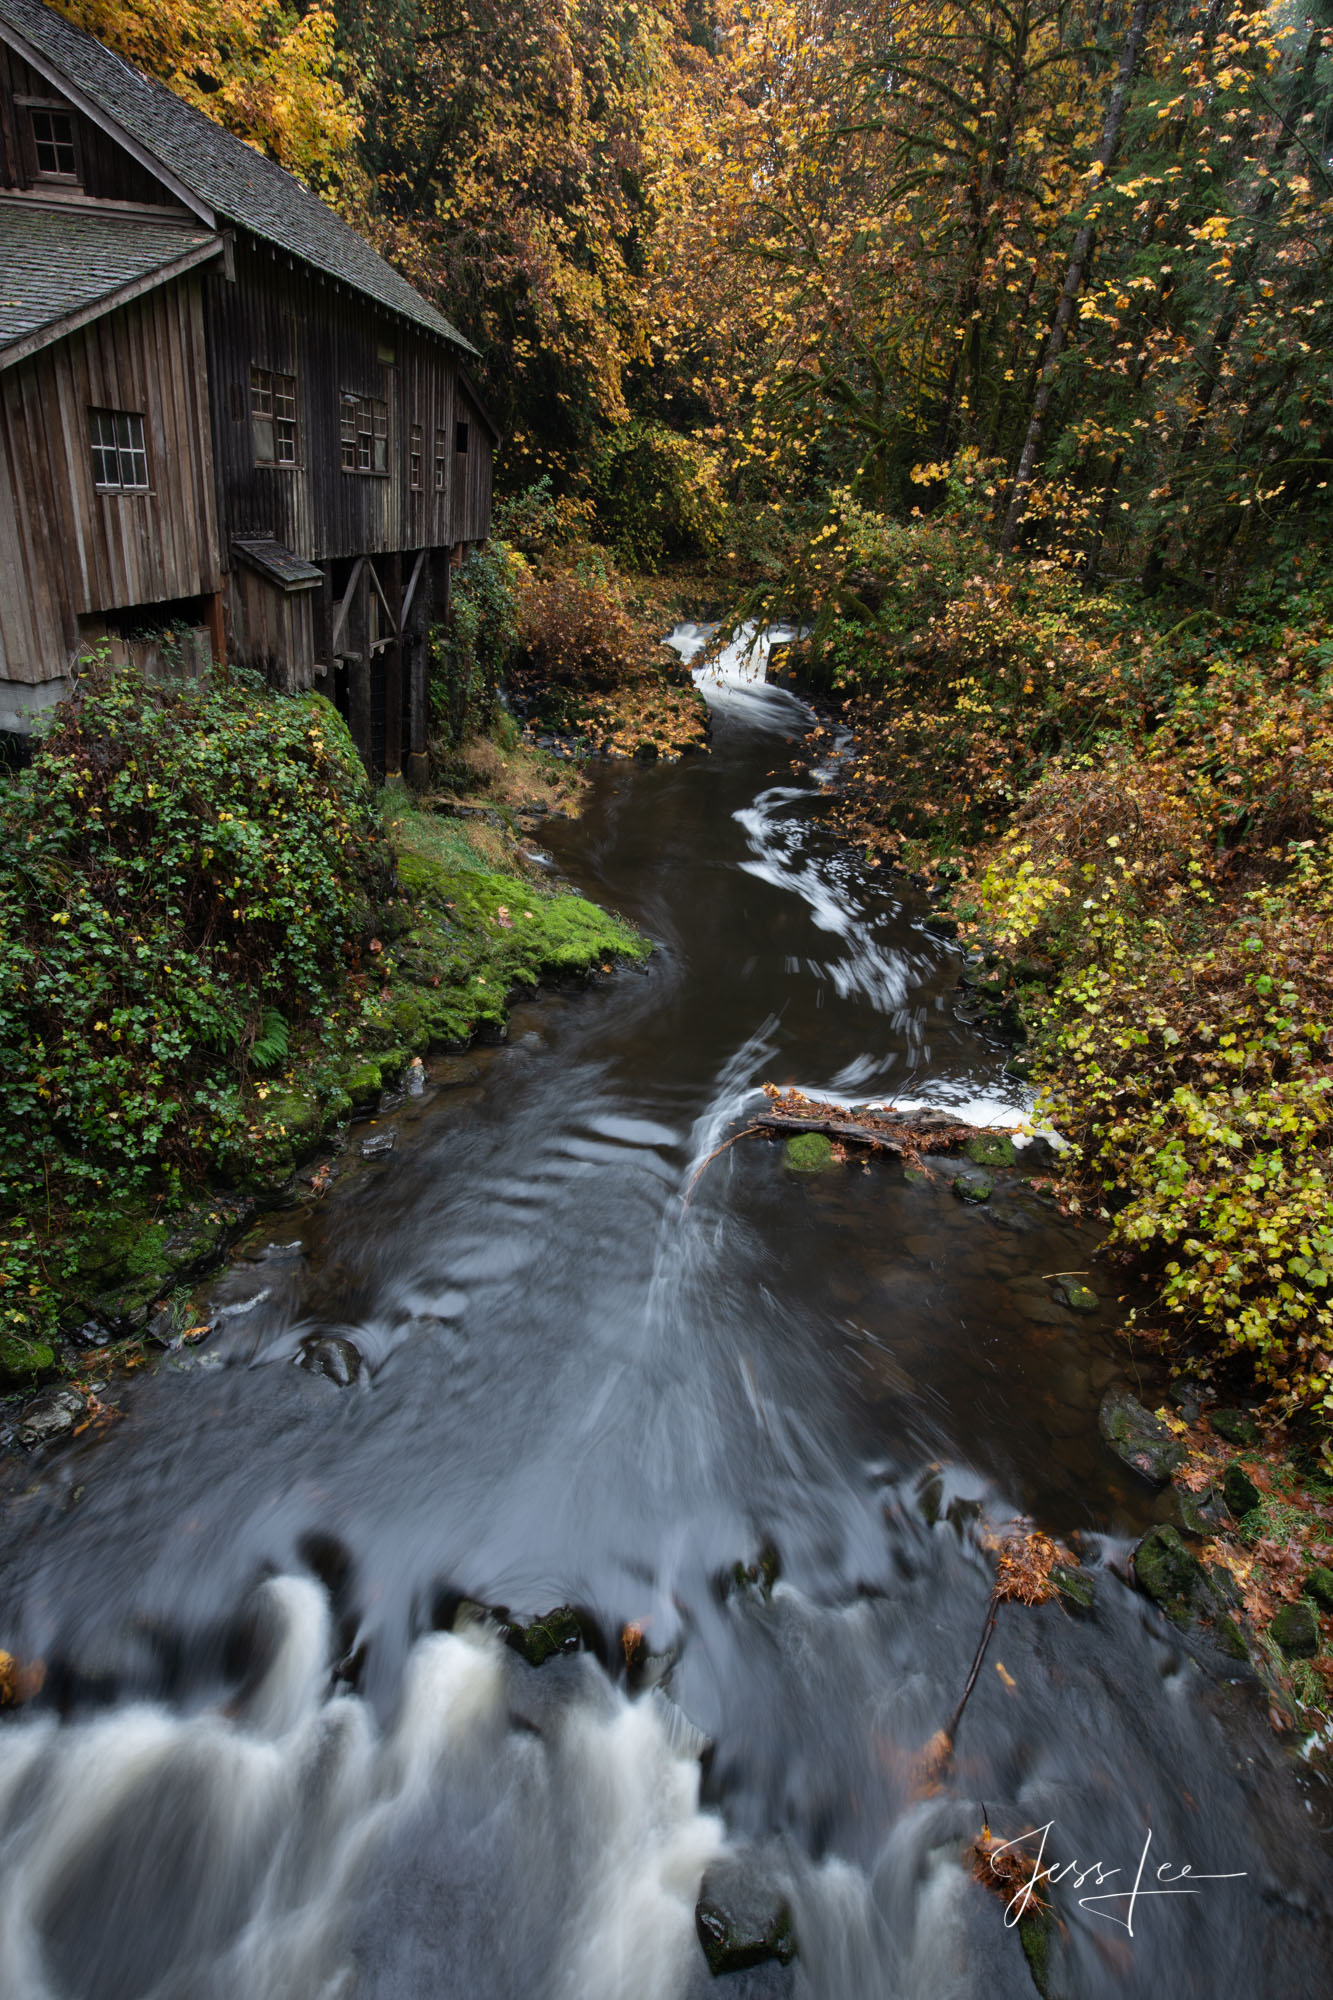 Fine Art Limited Edition Photography of Grist Mill in Washington. This is part of the luxurious collection of fine art, limited...